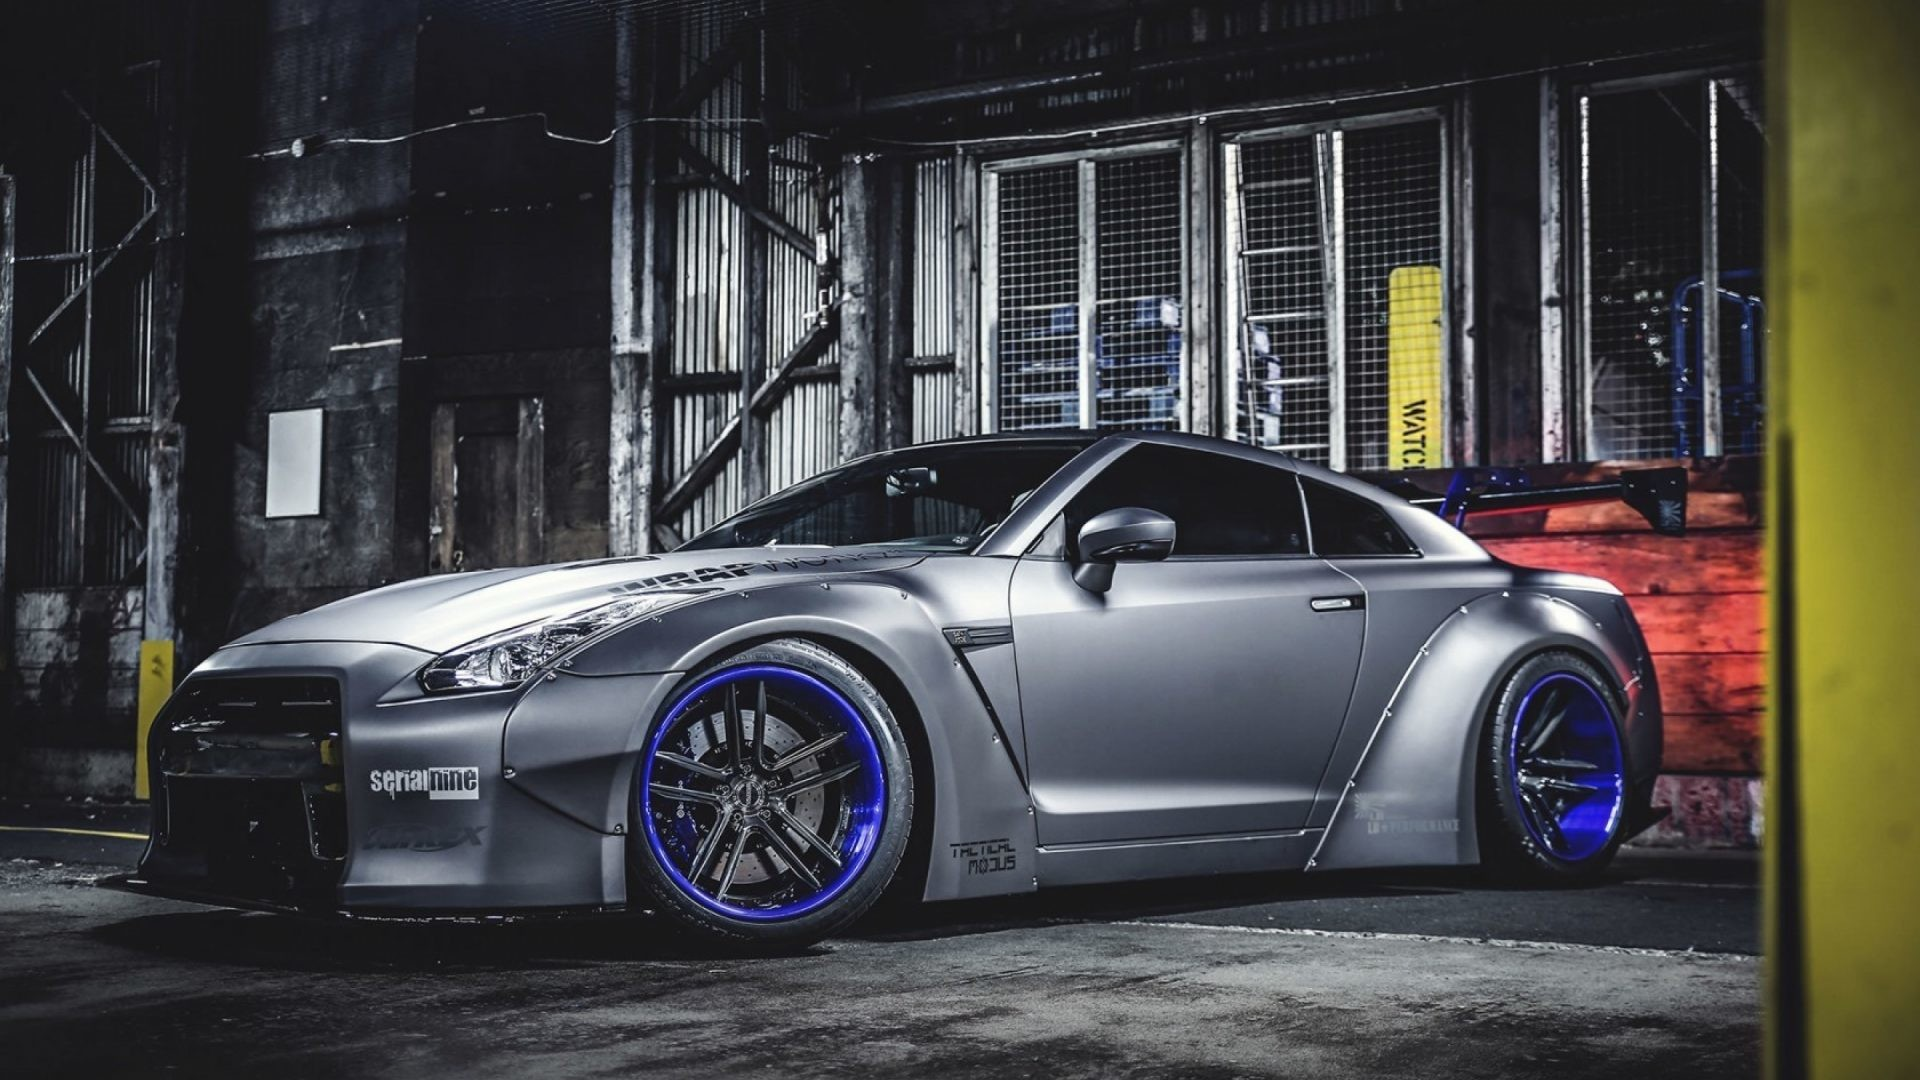 1920x1080 Nissan GTR Liberty Walk Tuning 4k HD Wallpaper